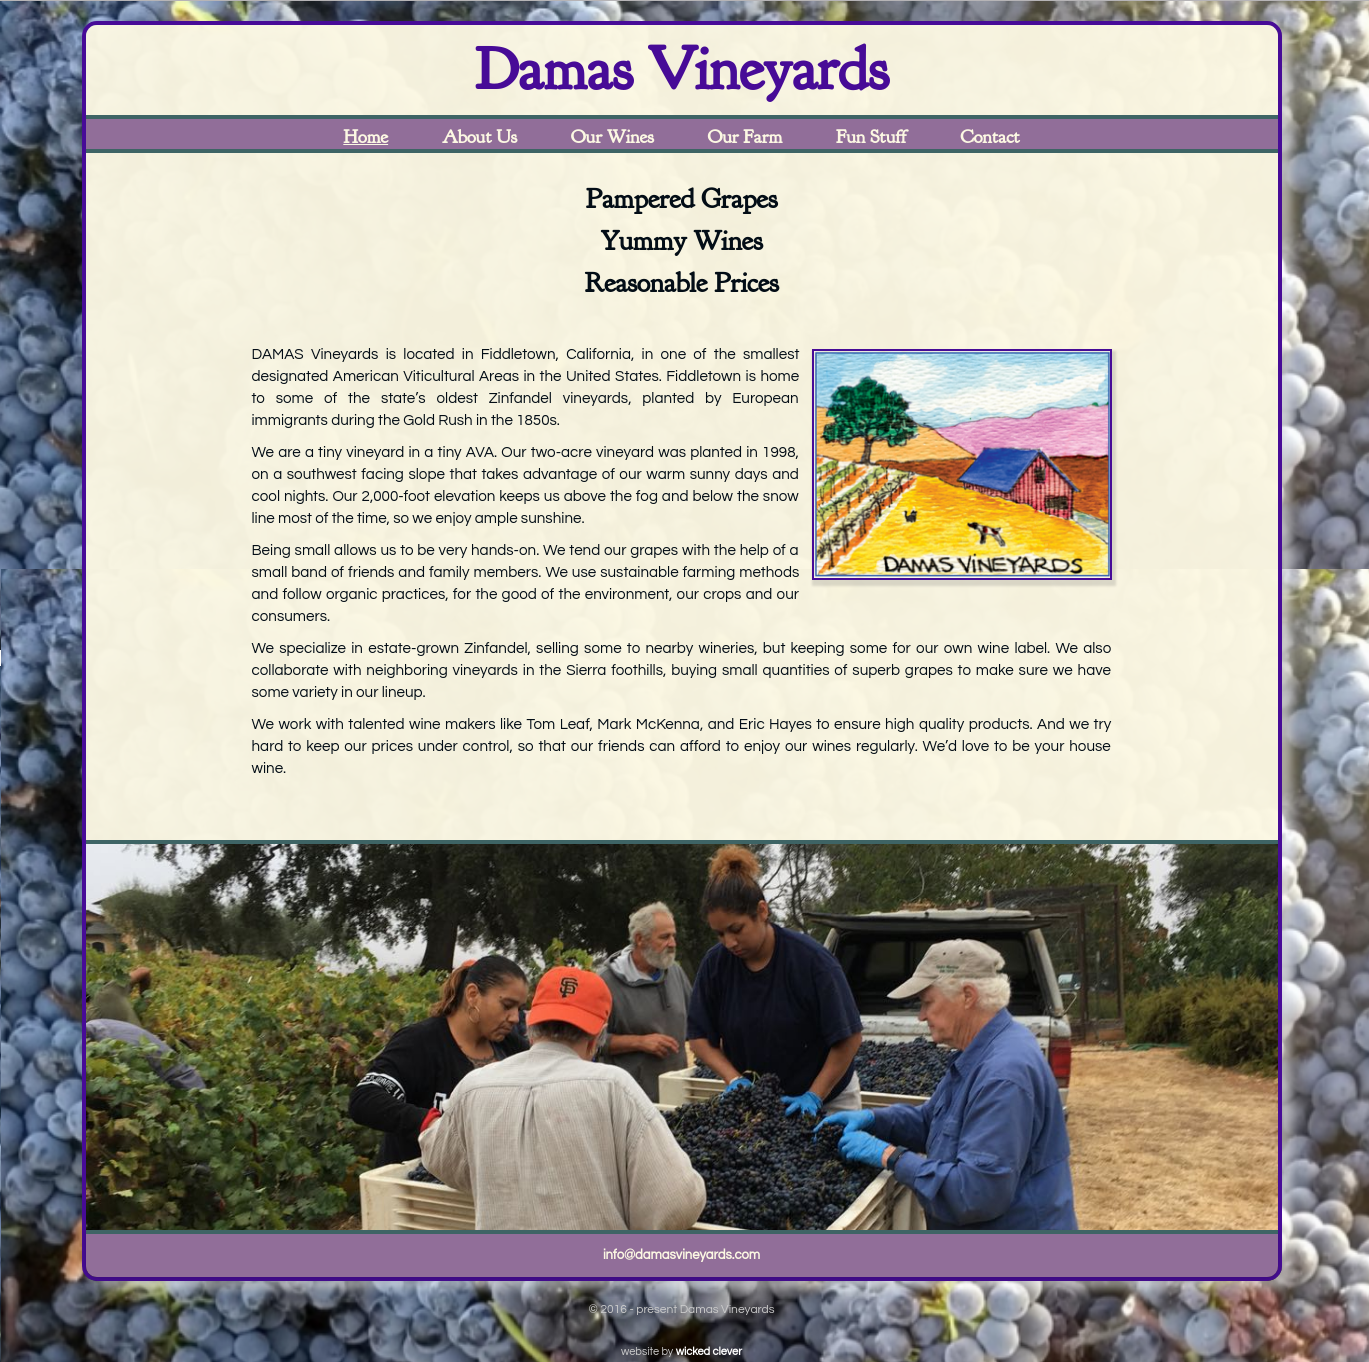 Damas Vineyards